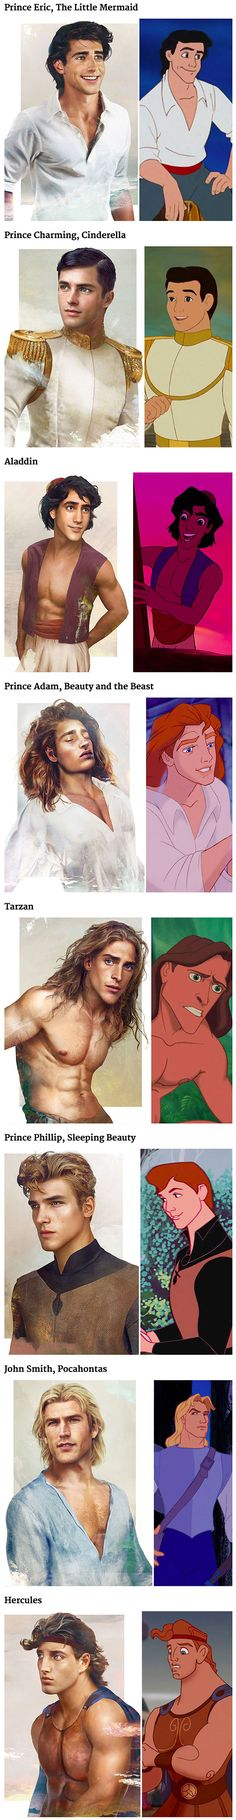 3.2 Disney's princes might have looked like in real life, Jirka Väätäinen, a Finnish artist and designer in Melbourne